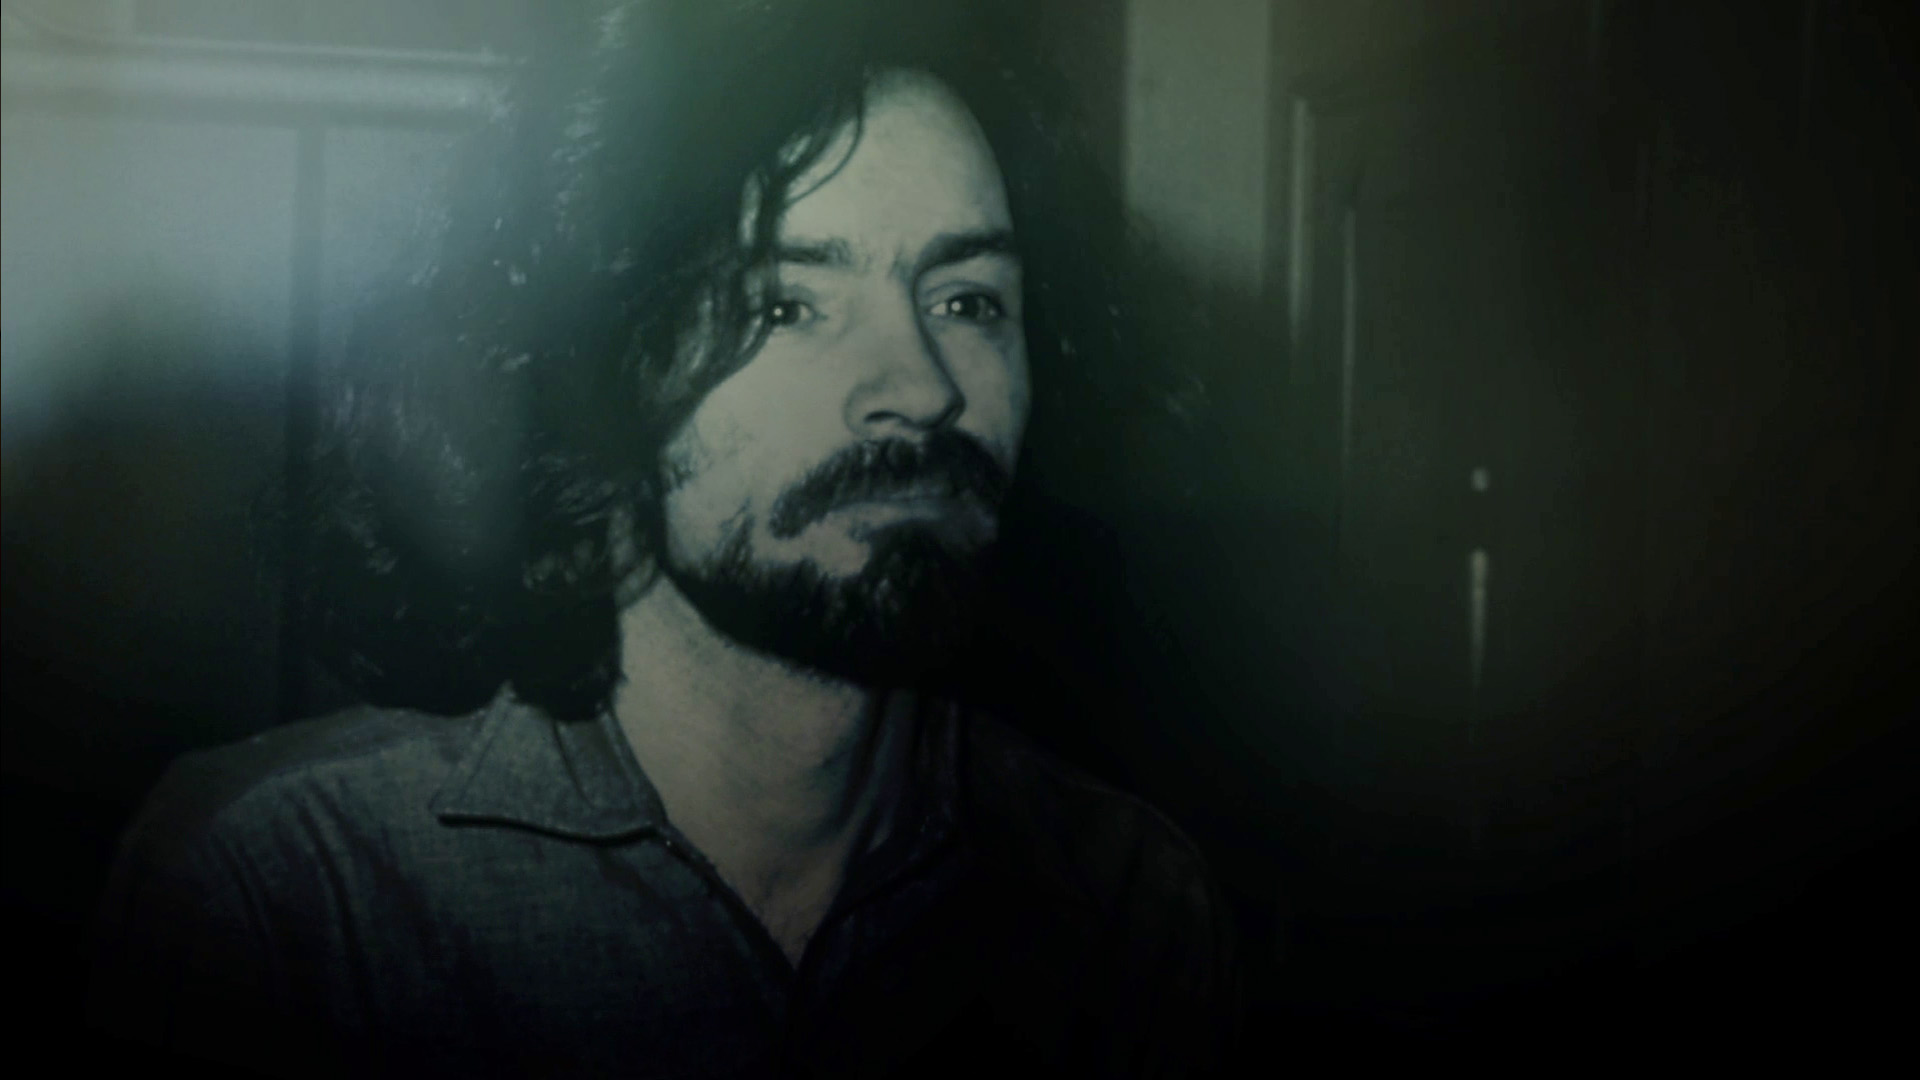 Network-Ireland-Television-Life-After-Manson-7-NITV.jpg